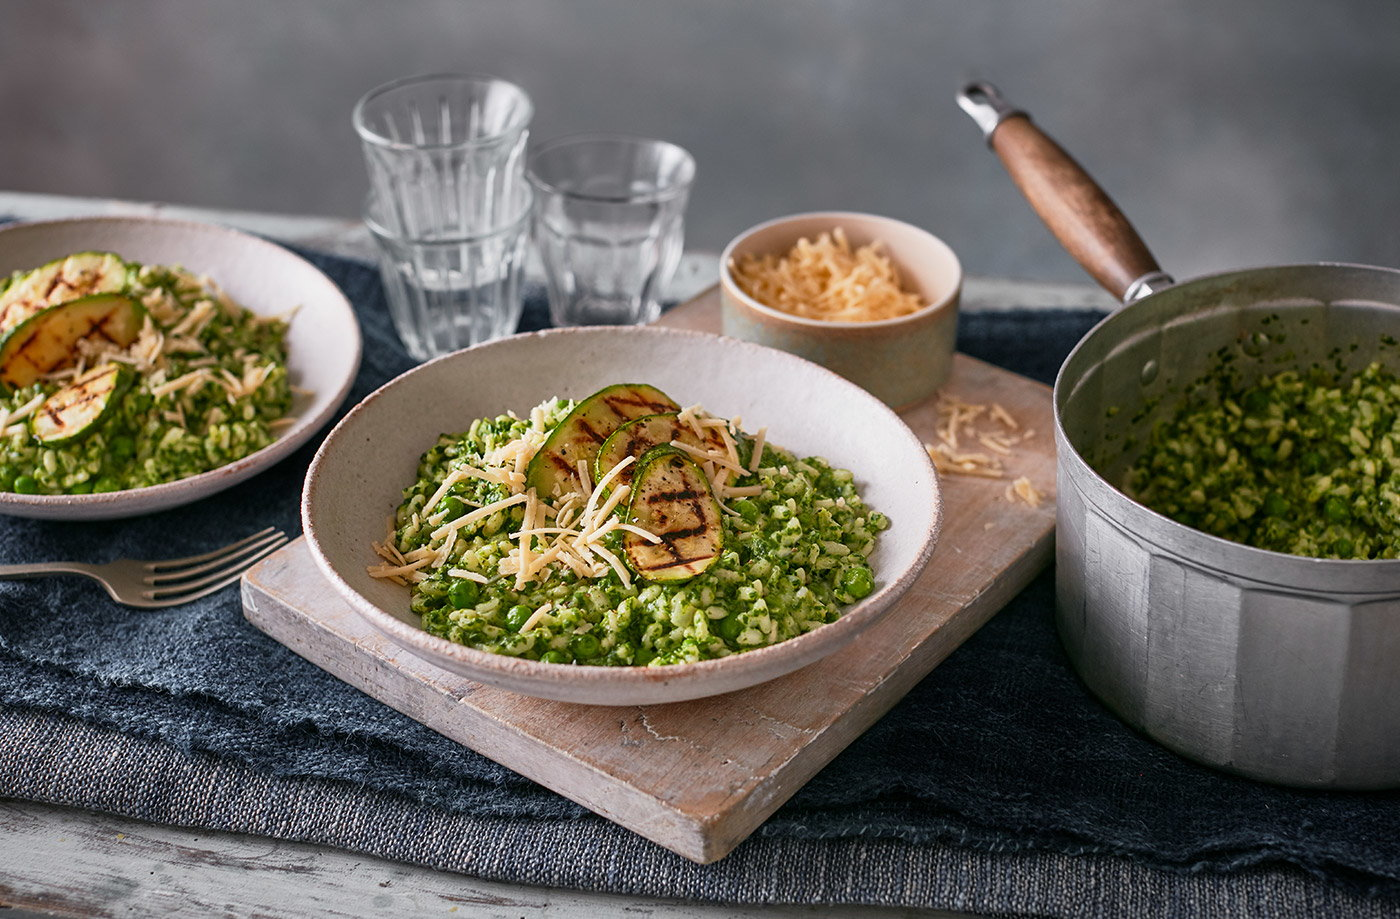 Green vegetable risotto recipe